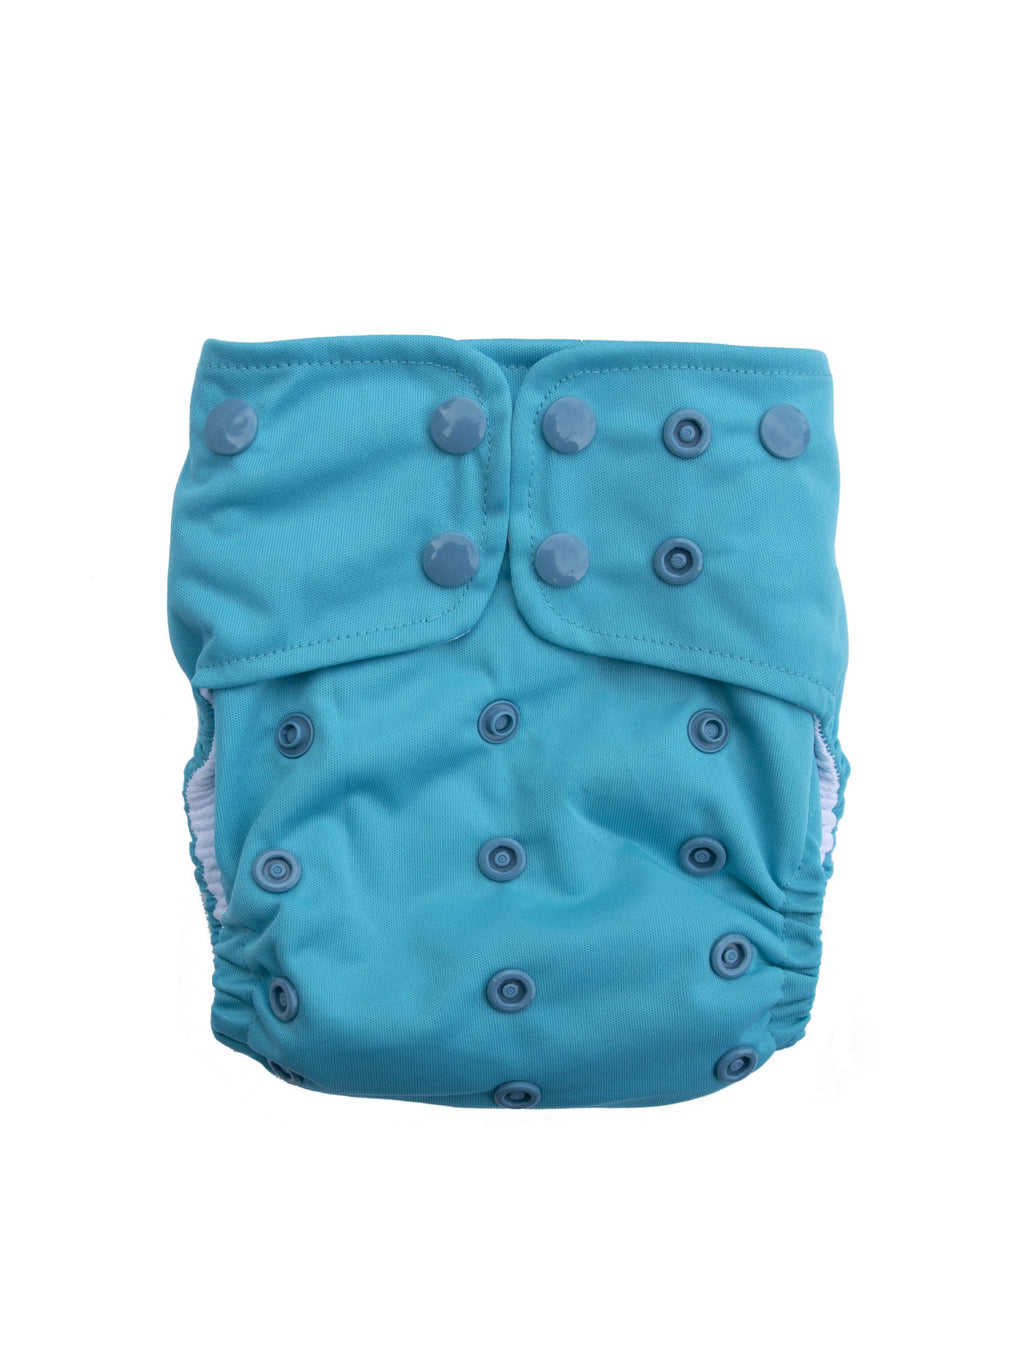 Blue Lagoon - AIO Diaper - Releases 7/16 at 12:00pm (noon) EST